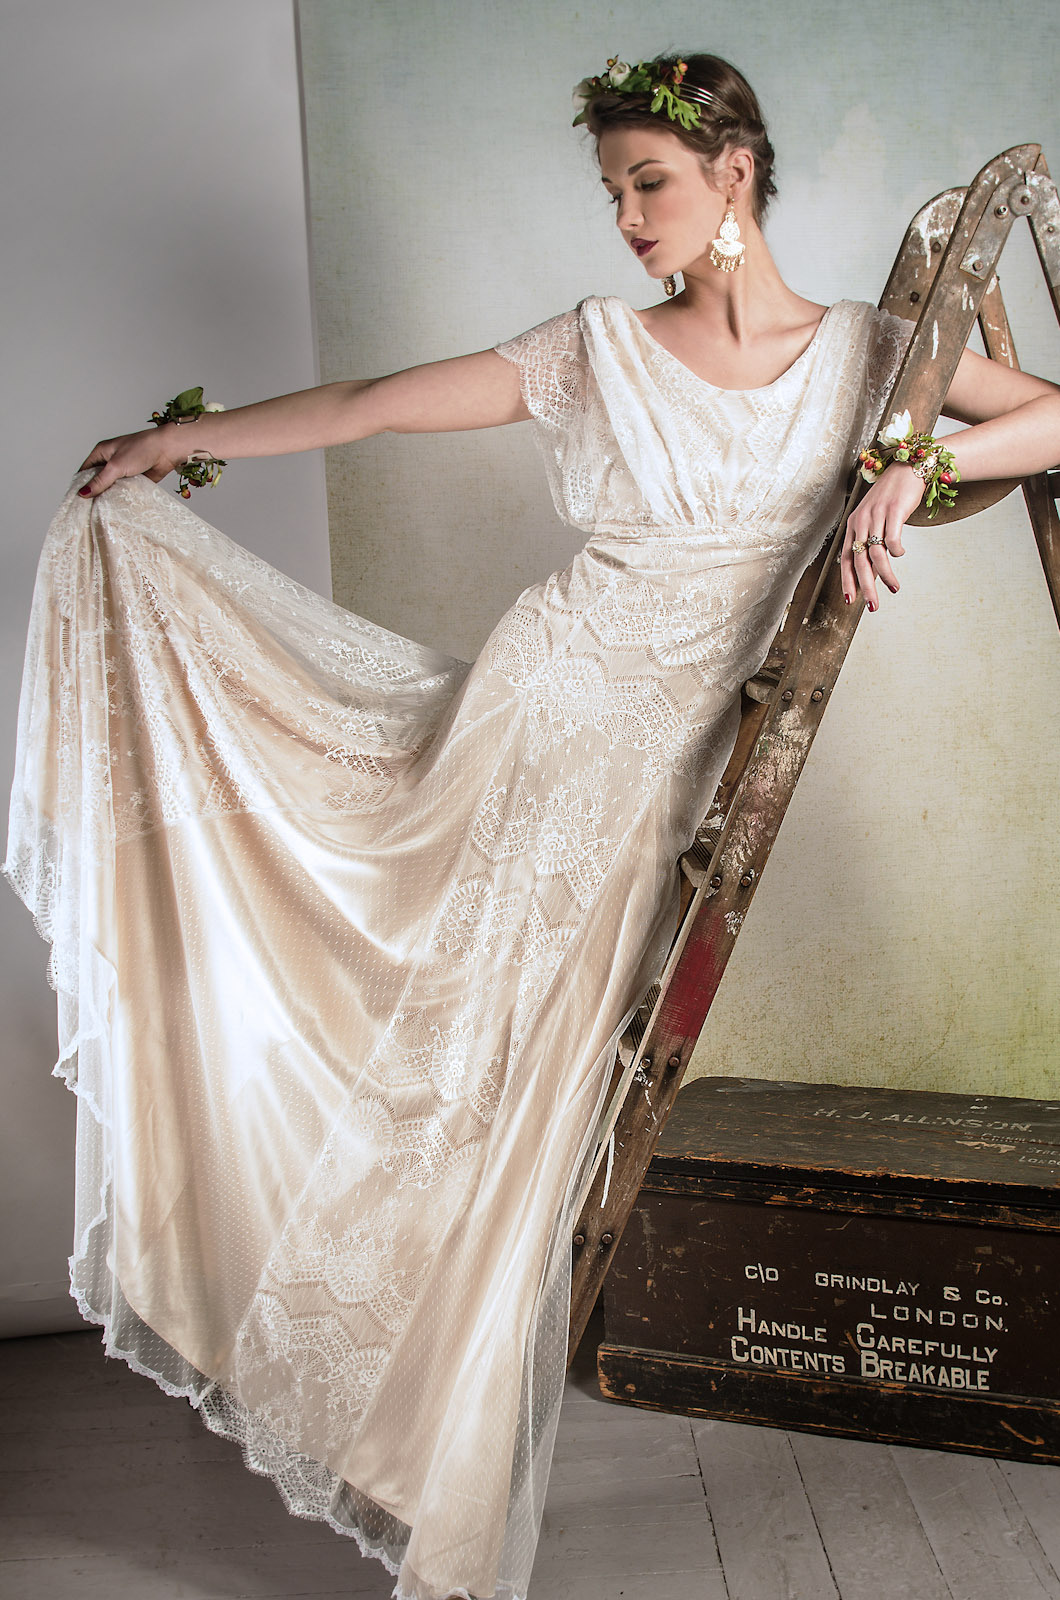 Belle & Bunty's 2014 Bridal Capsule Collection